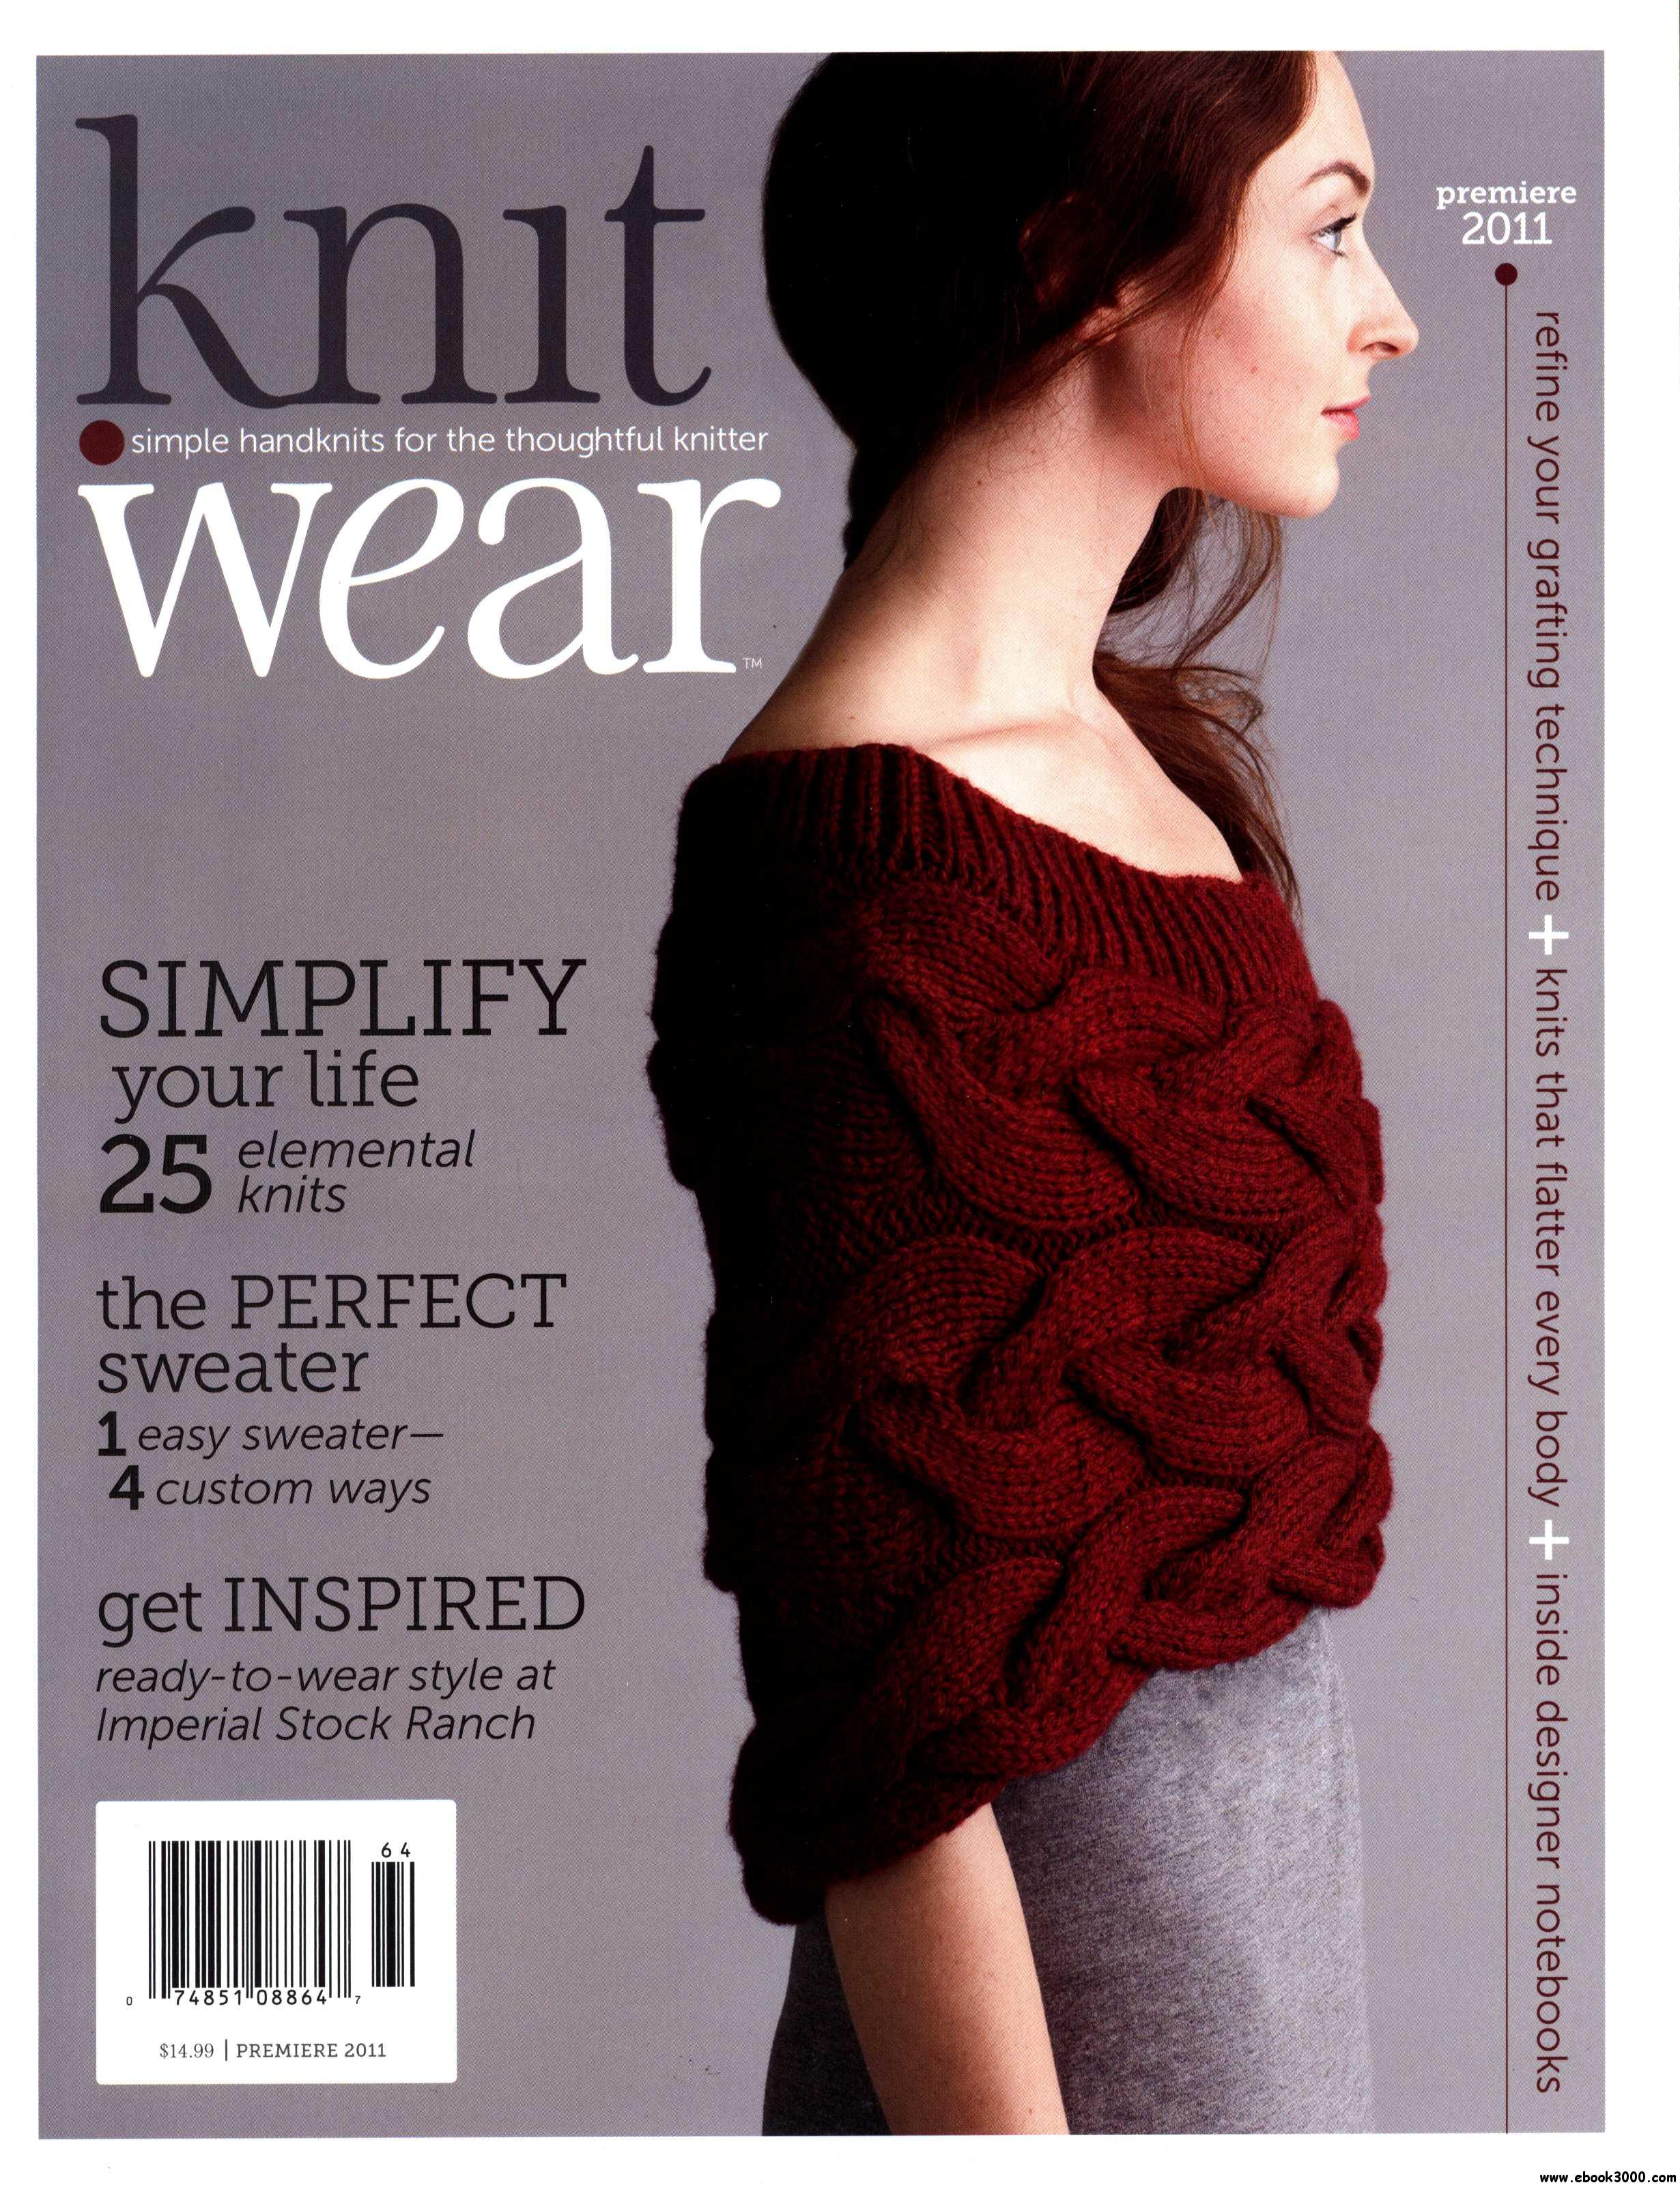 Knit.Wear - Special Edition from Interweare Knits 2011 free download